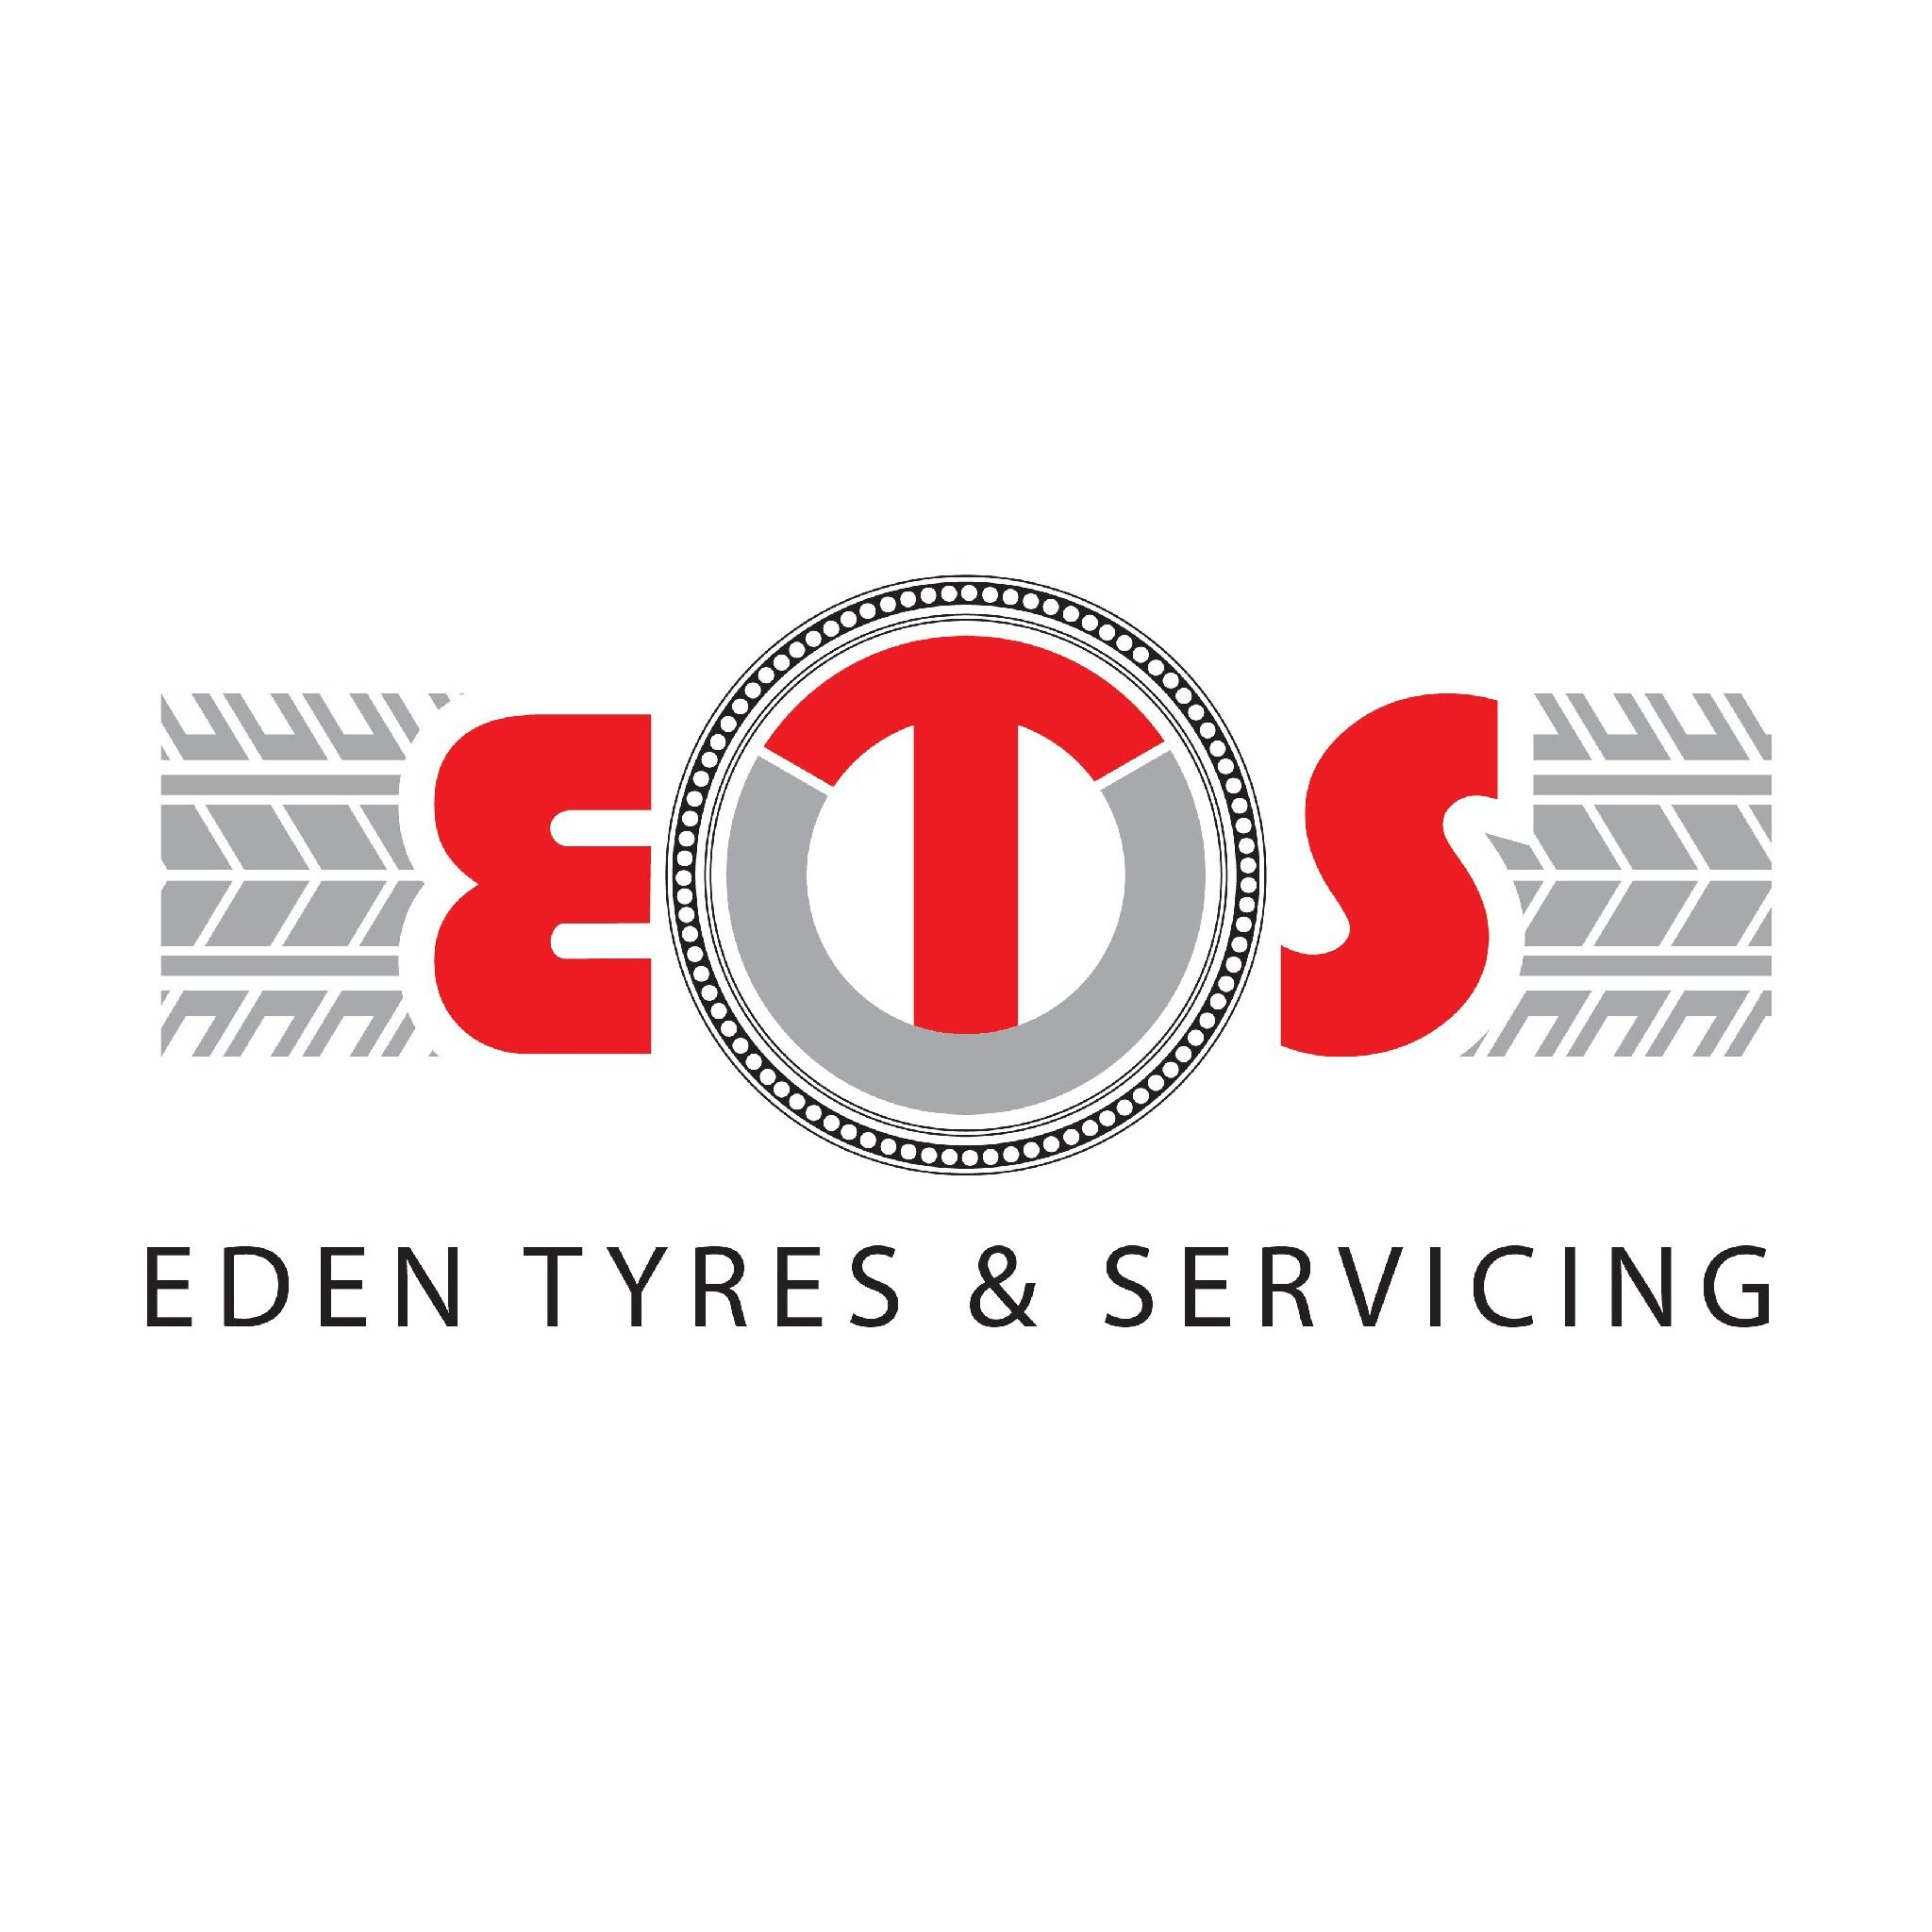 image of Eden Tyres & Servicing